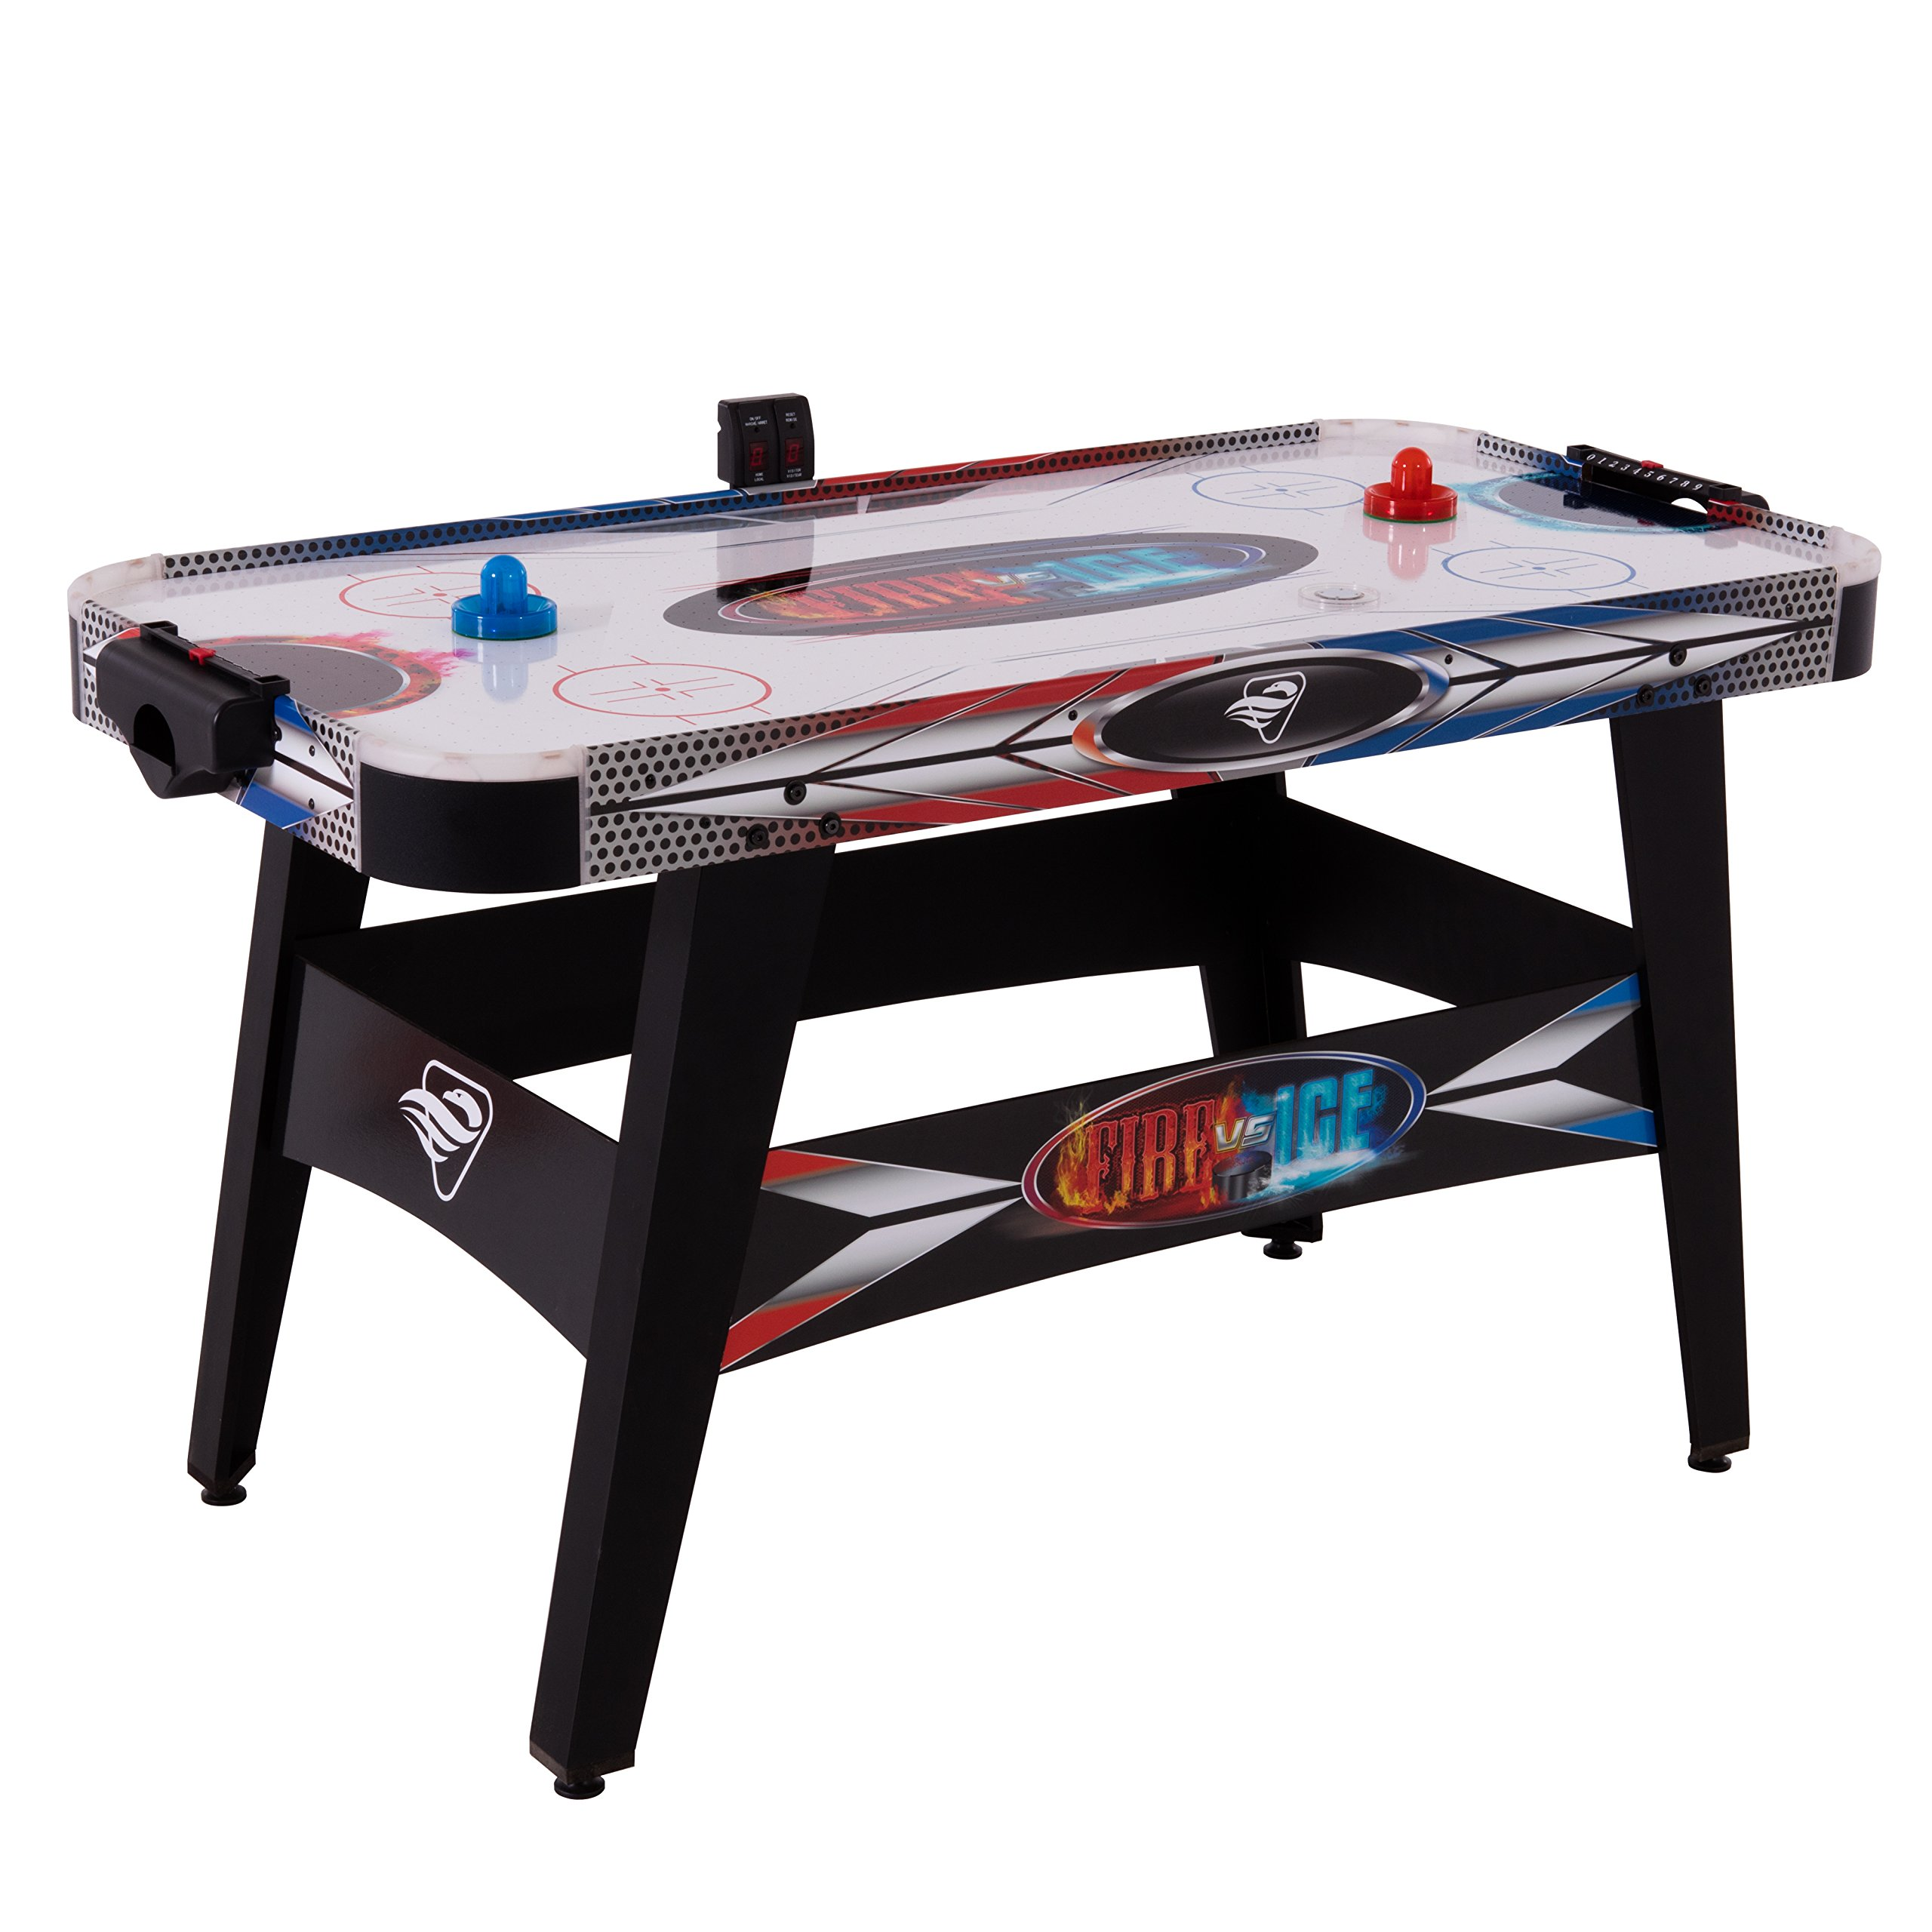 "New - Triumph Fire 'n Ice LED Light-Up 54"" Air Hockey Table by Triumph"